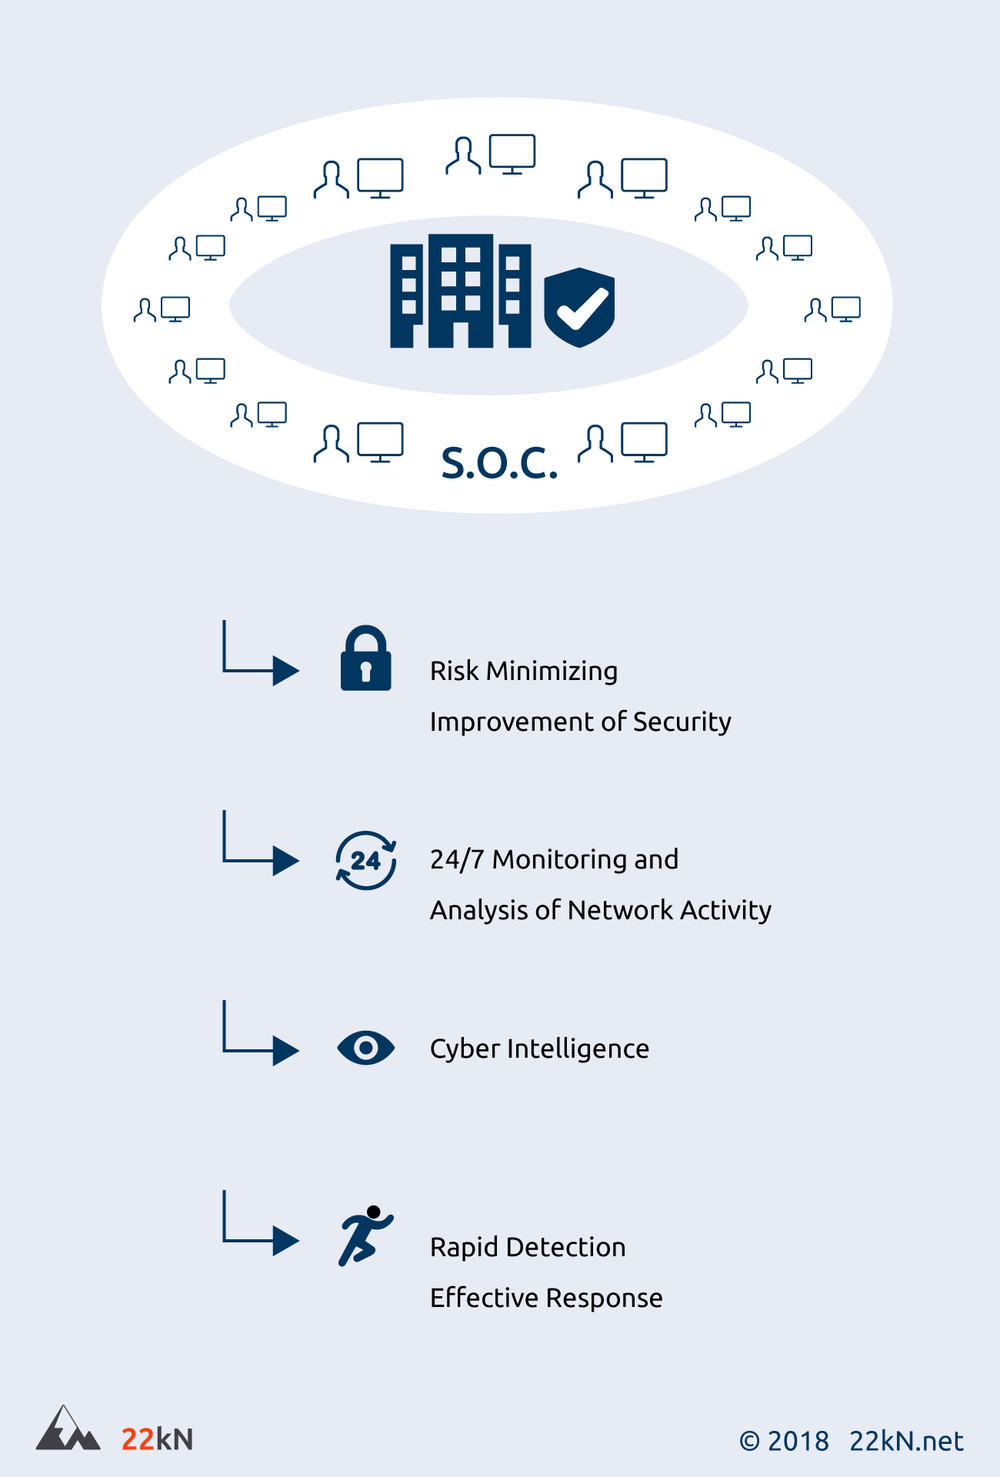 Benefits Of Having A Security Operations Center S O C As A Service 22kn Cyber Security At The Highest Level